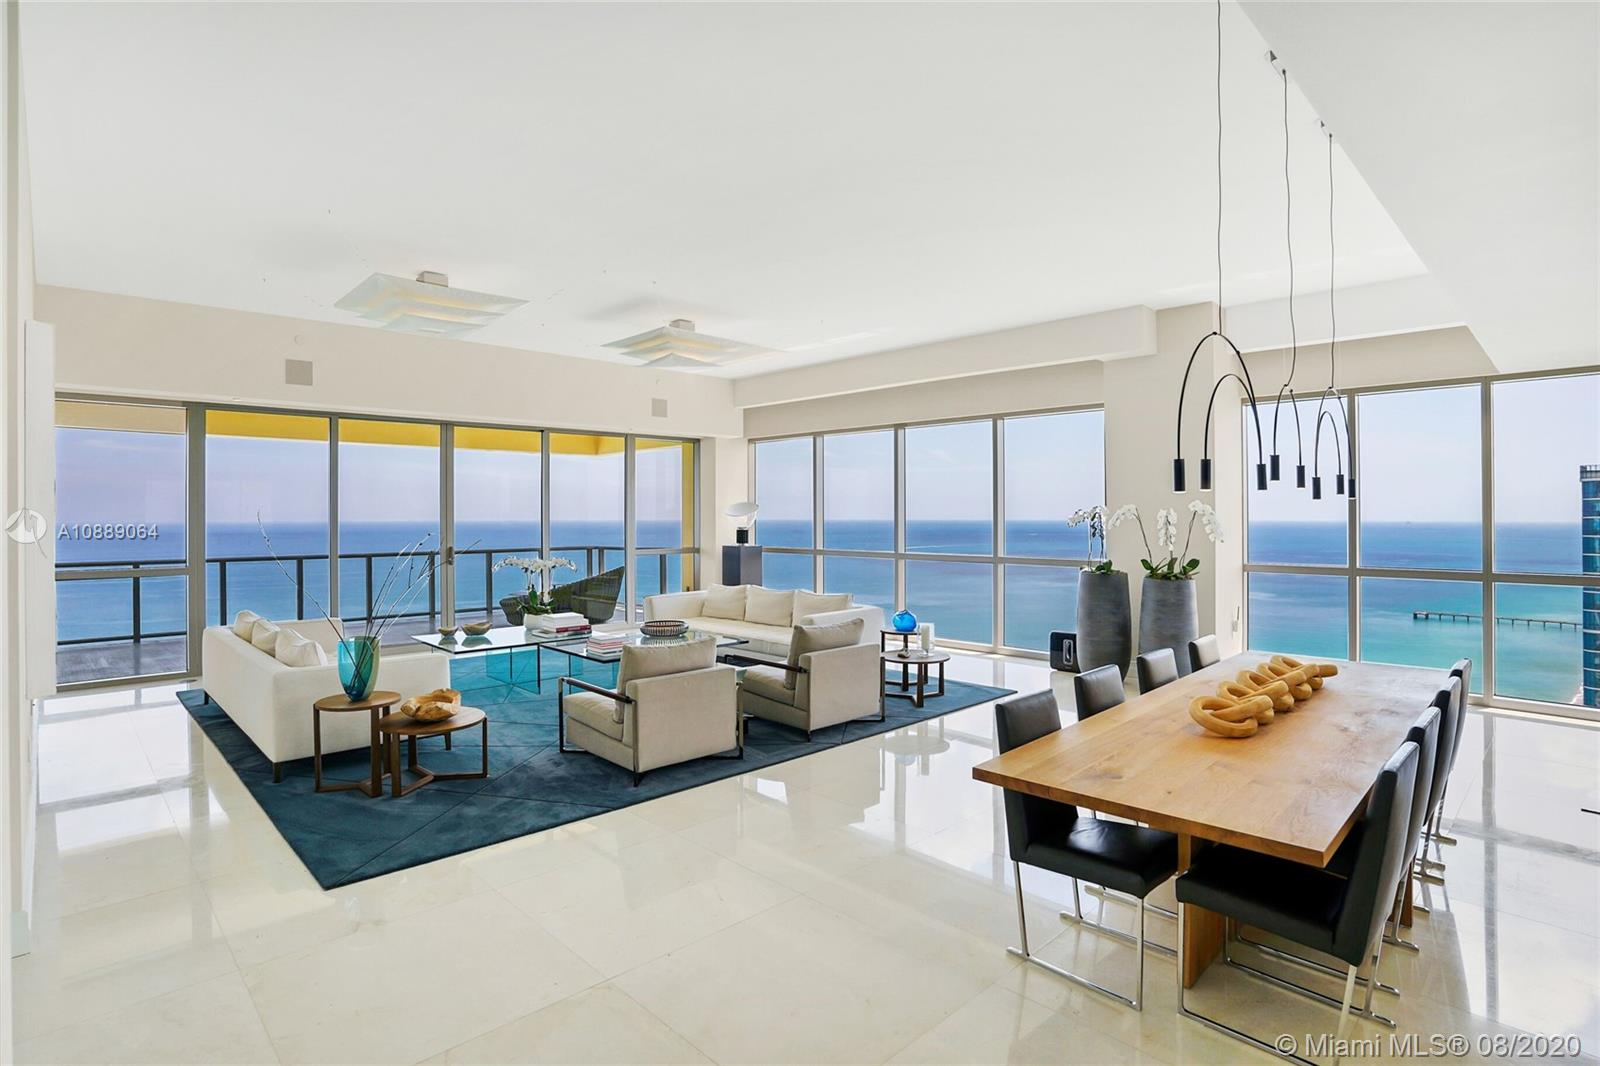 """STEP INSIDE TO THE MOST LUXURIOUS TOWER IN SUNNY ISLE,  MANSIONS OF ACQUALINA, THIS FULLY TURNKEY  RESIDENCE #3202 BRING ONLY YOUR TOOTHBRUSH, HAS ENDLESS SOUTH & NORTH COASTLINE VIEWS OF THE OCEAN AND OVER LOOKS TOWARDS DOWNTOWN FROM THE WEST BALCONIES.  BREATHTAKING BEAUTIFUL ATTENTION TO DETAIL FEATURING 4609 SQ.FT 3BED PLUS FAMILY PLUS SERVICE & 6.5 BATHS, DIRECT OCEANFRONT, HAS PREFERRED SOUTHERN EXPOSURE, INCLUDING PRIVATE JACUZZI, &OUTDOOR SUMMER KITCHEN.  PRIVATE ENTRY FOYER WITH 12FT CEILINGS, SPACIOUS LIVING AREA & MASTER SUITE, INCLUDES HIS & HER MASTER BATHS, FIREPLACE & MORE.  ENJOY 5 STAR AMENITY SERVICES  INCLUDES A """"ROLLS ROYCE HOUSE CAR, COMPLIMENTARY BREAKFAST , FULL HAMMAM , SPA, BEACH CLUB SERVICES, YOGA, CIGAR LOUNGE,  LUXURY CONDO LIVING AT ITS BEST IN SOUTH FLORIDA."""